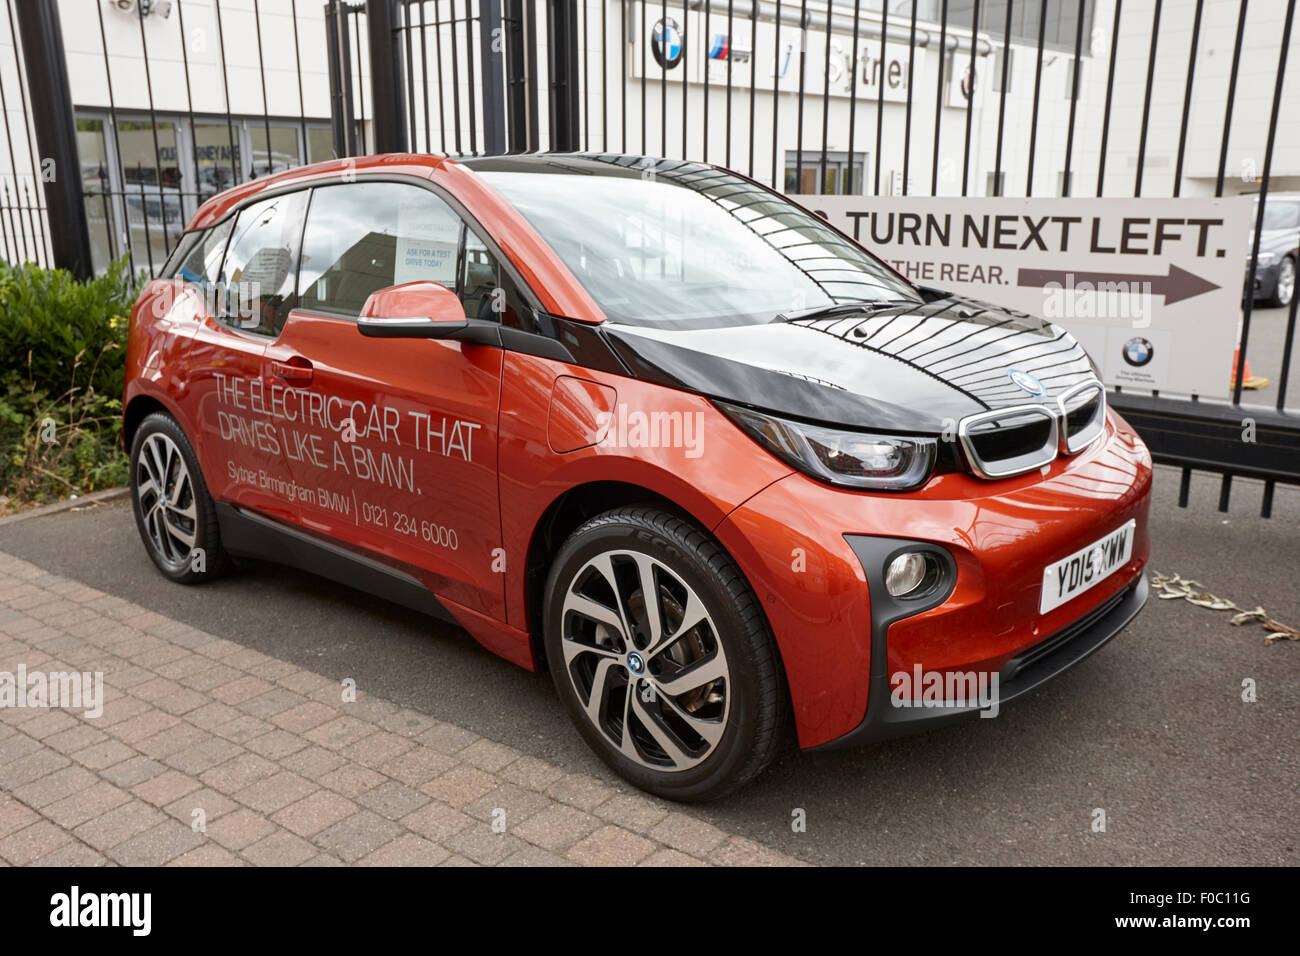 Bmw I3 Electric Car On Display At A Car Dealers Birmingham Uk Stock